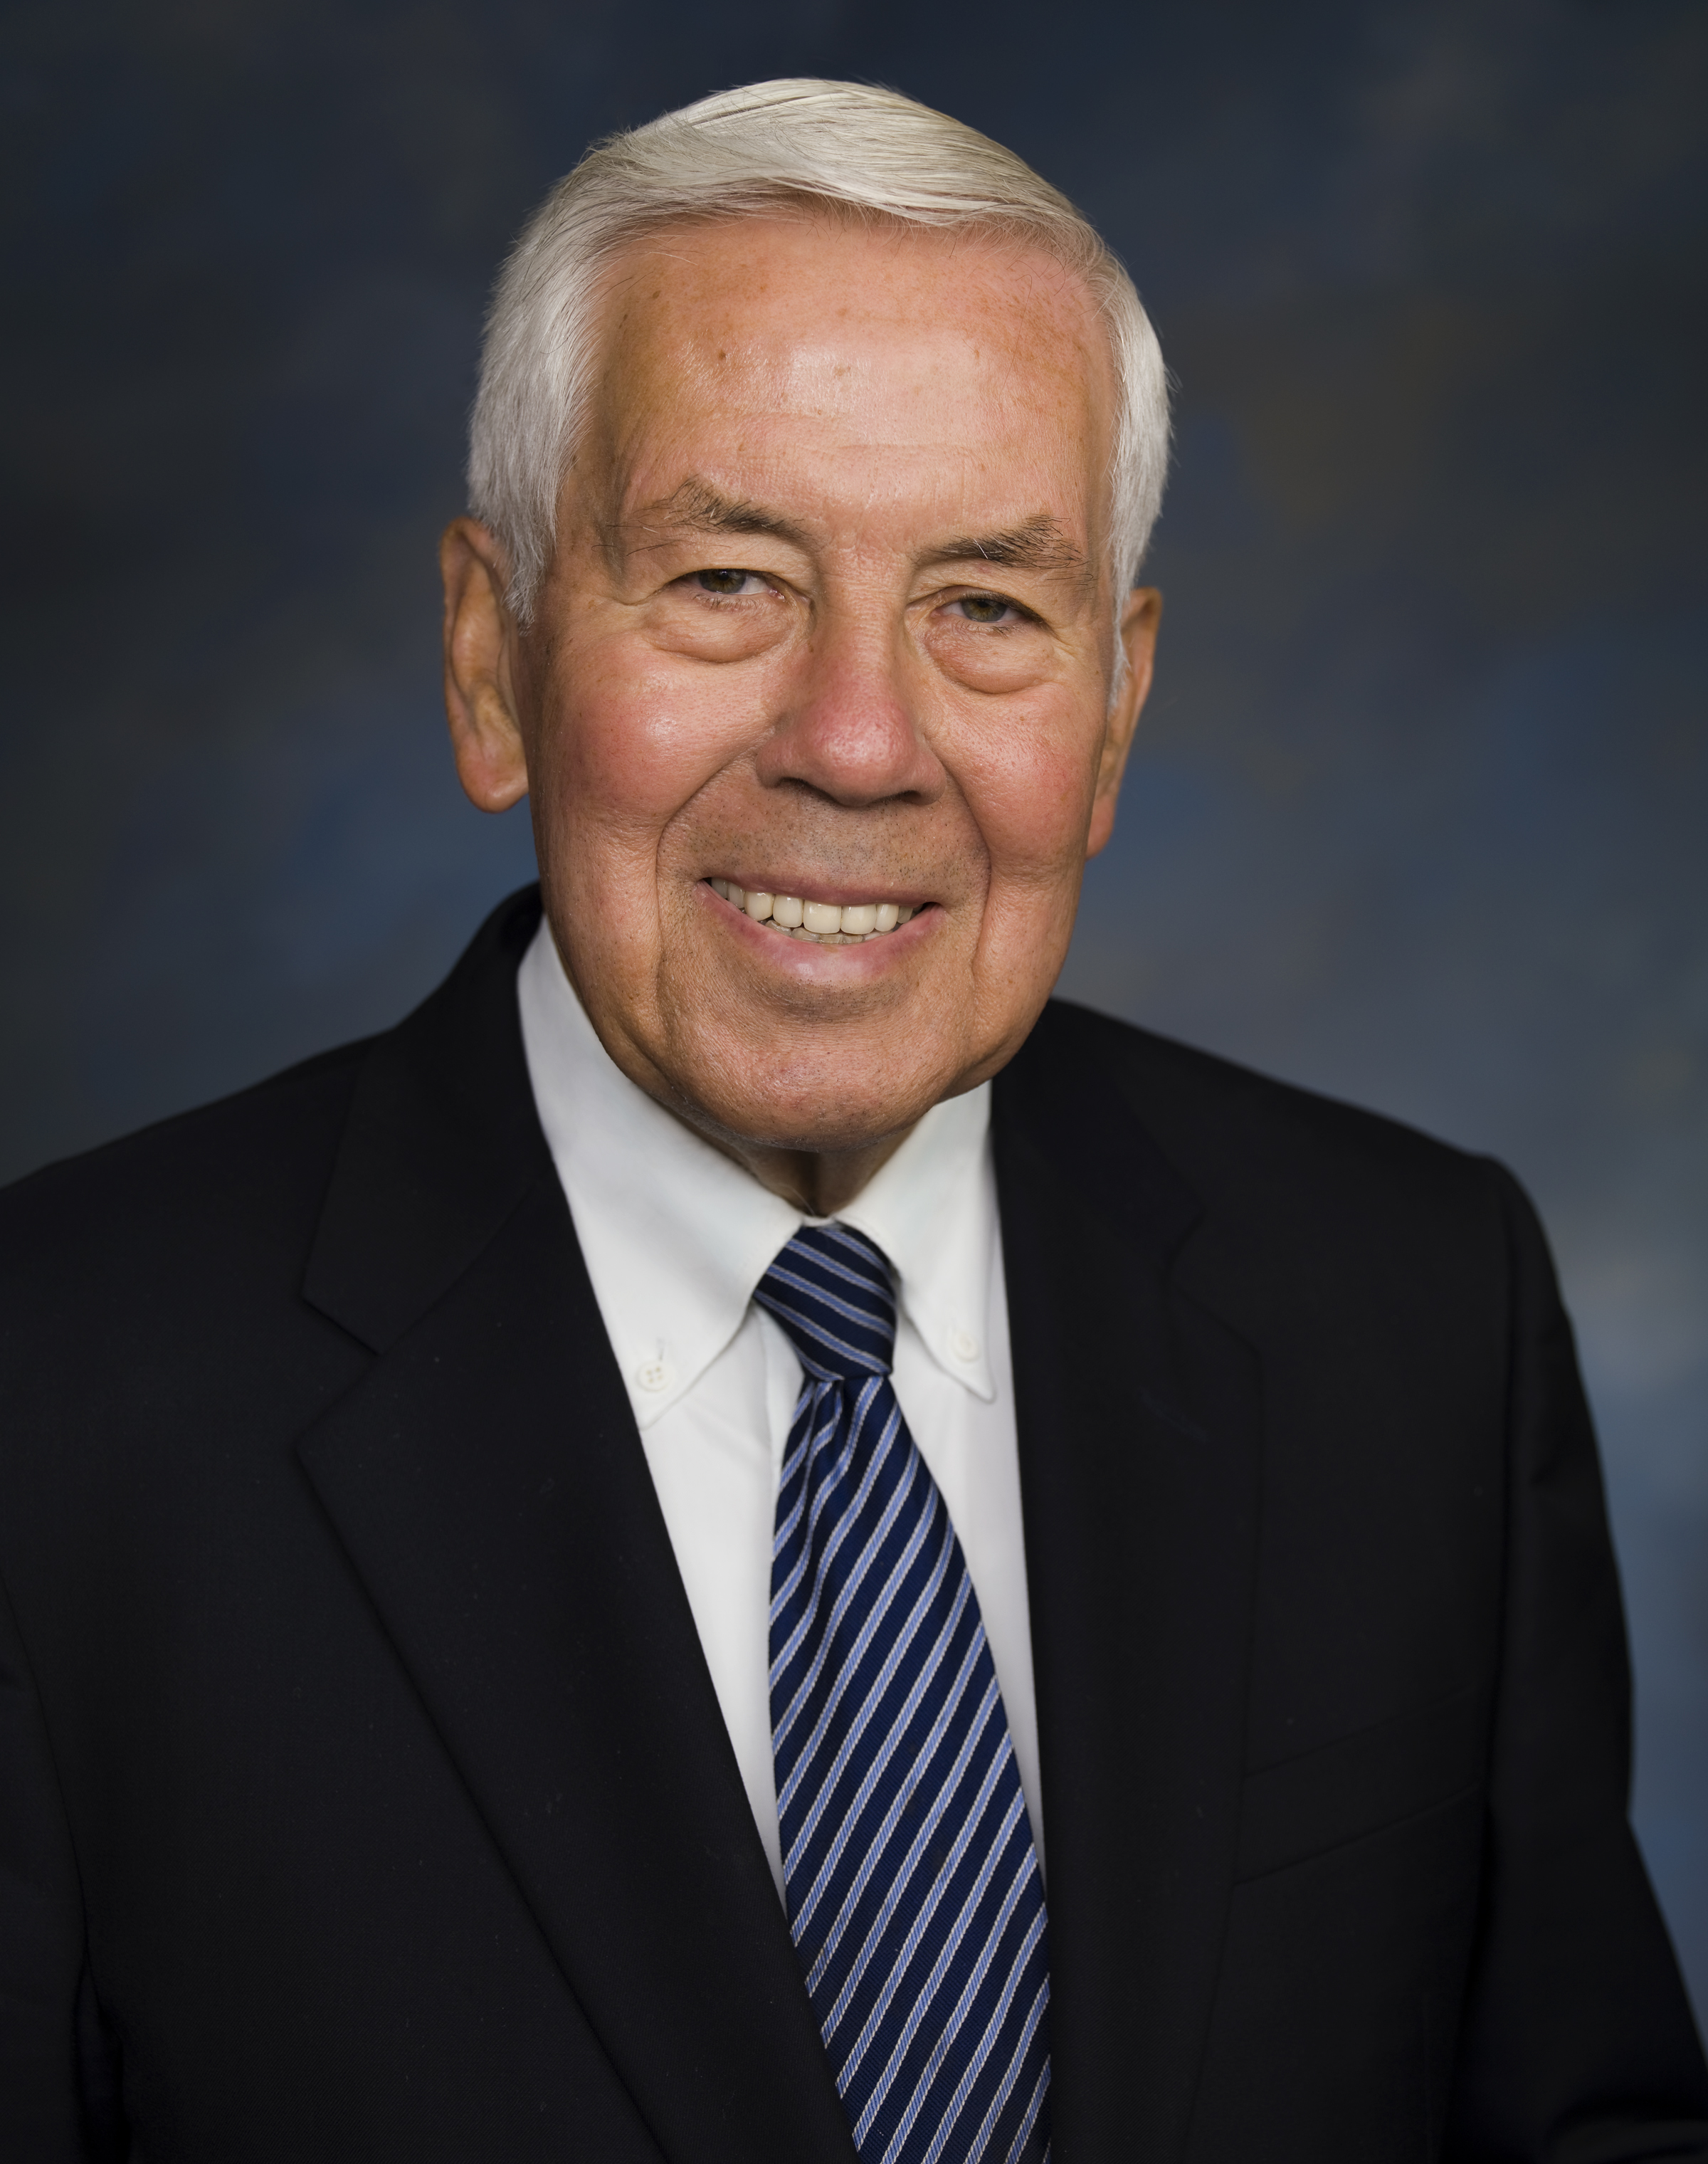 File:Dick Lugar official photo 2010.JPG - Wikipedia, the free ...